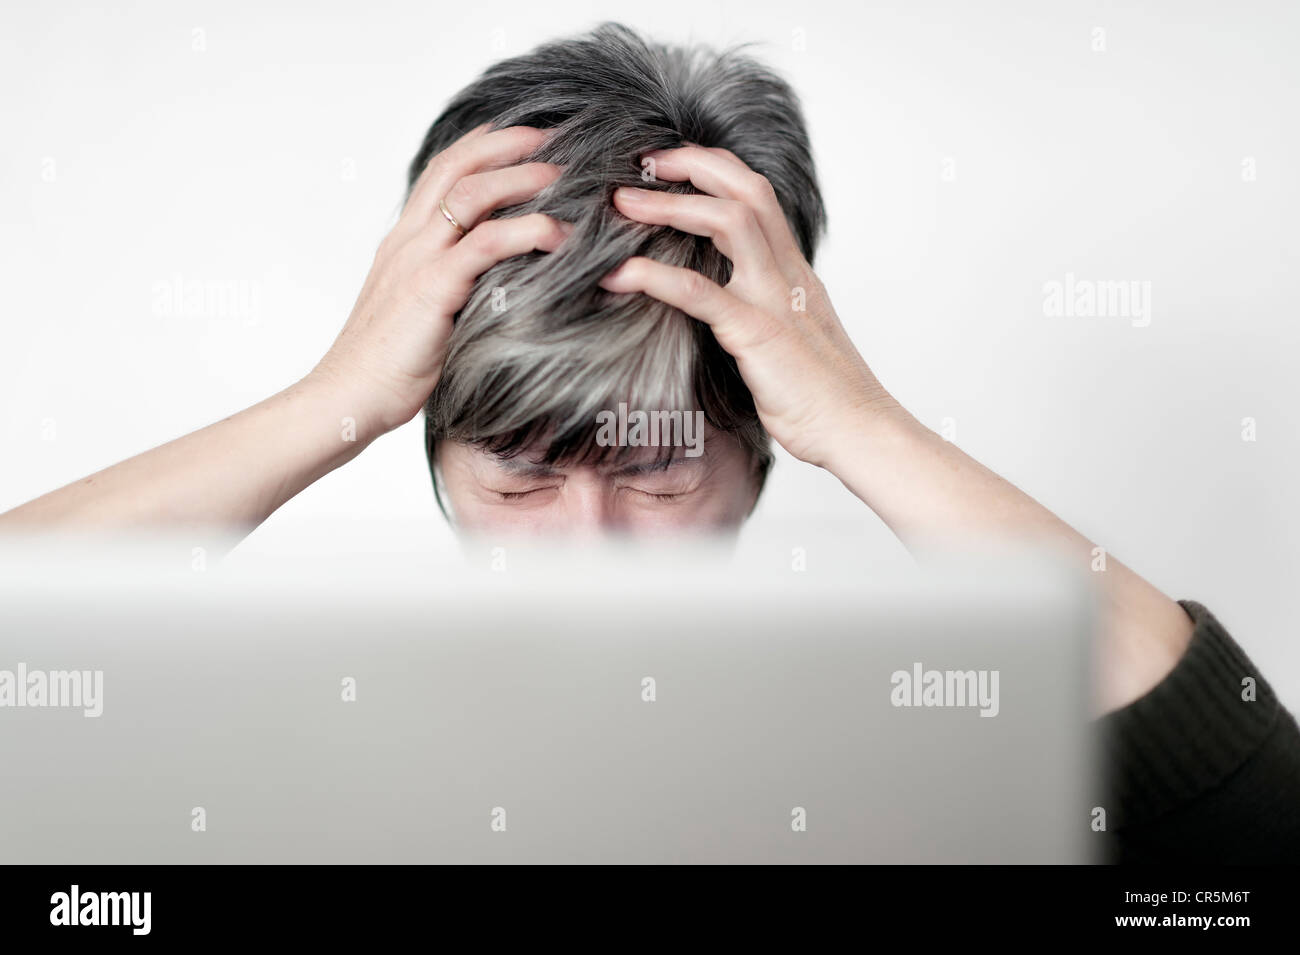 stressed woman sitting behind a computer screen tearing at her hair